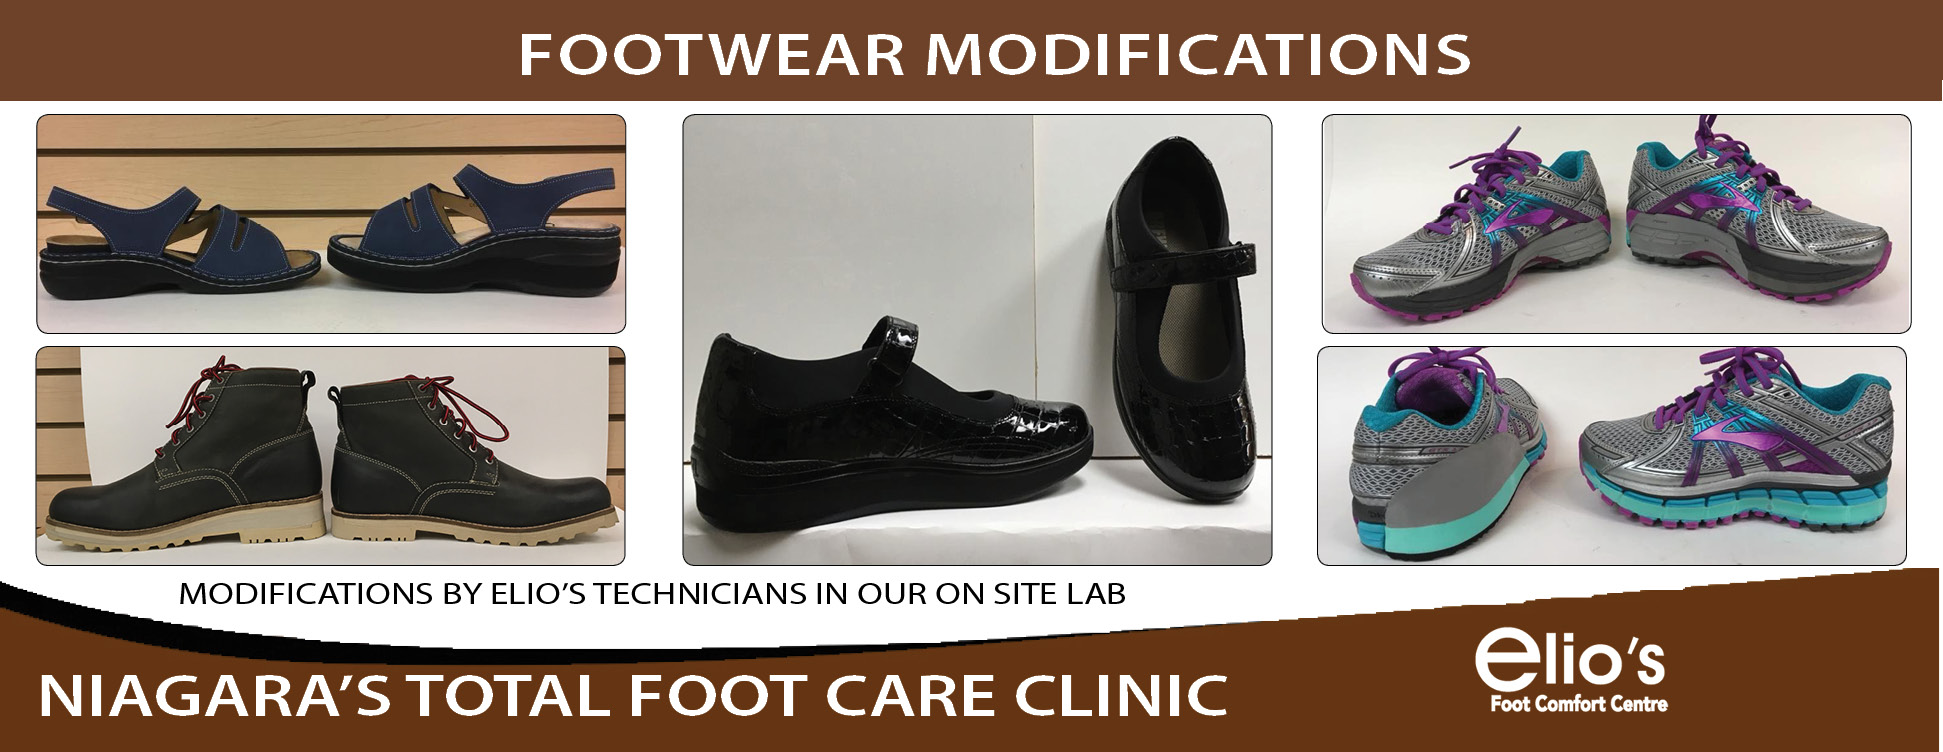 Footwear_Modifications_ Elios